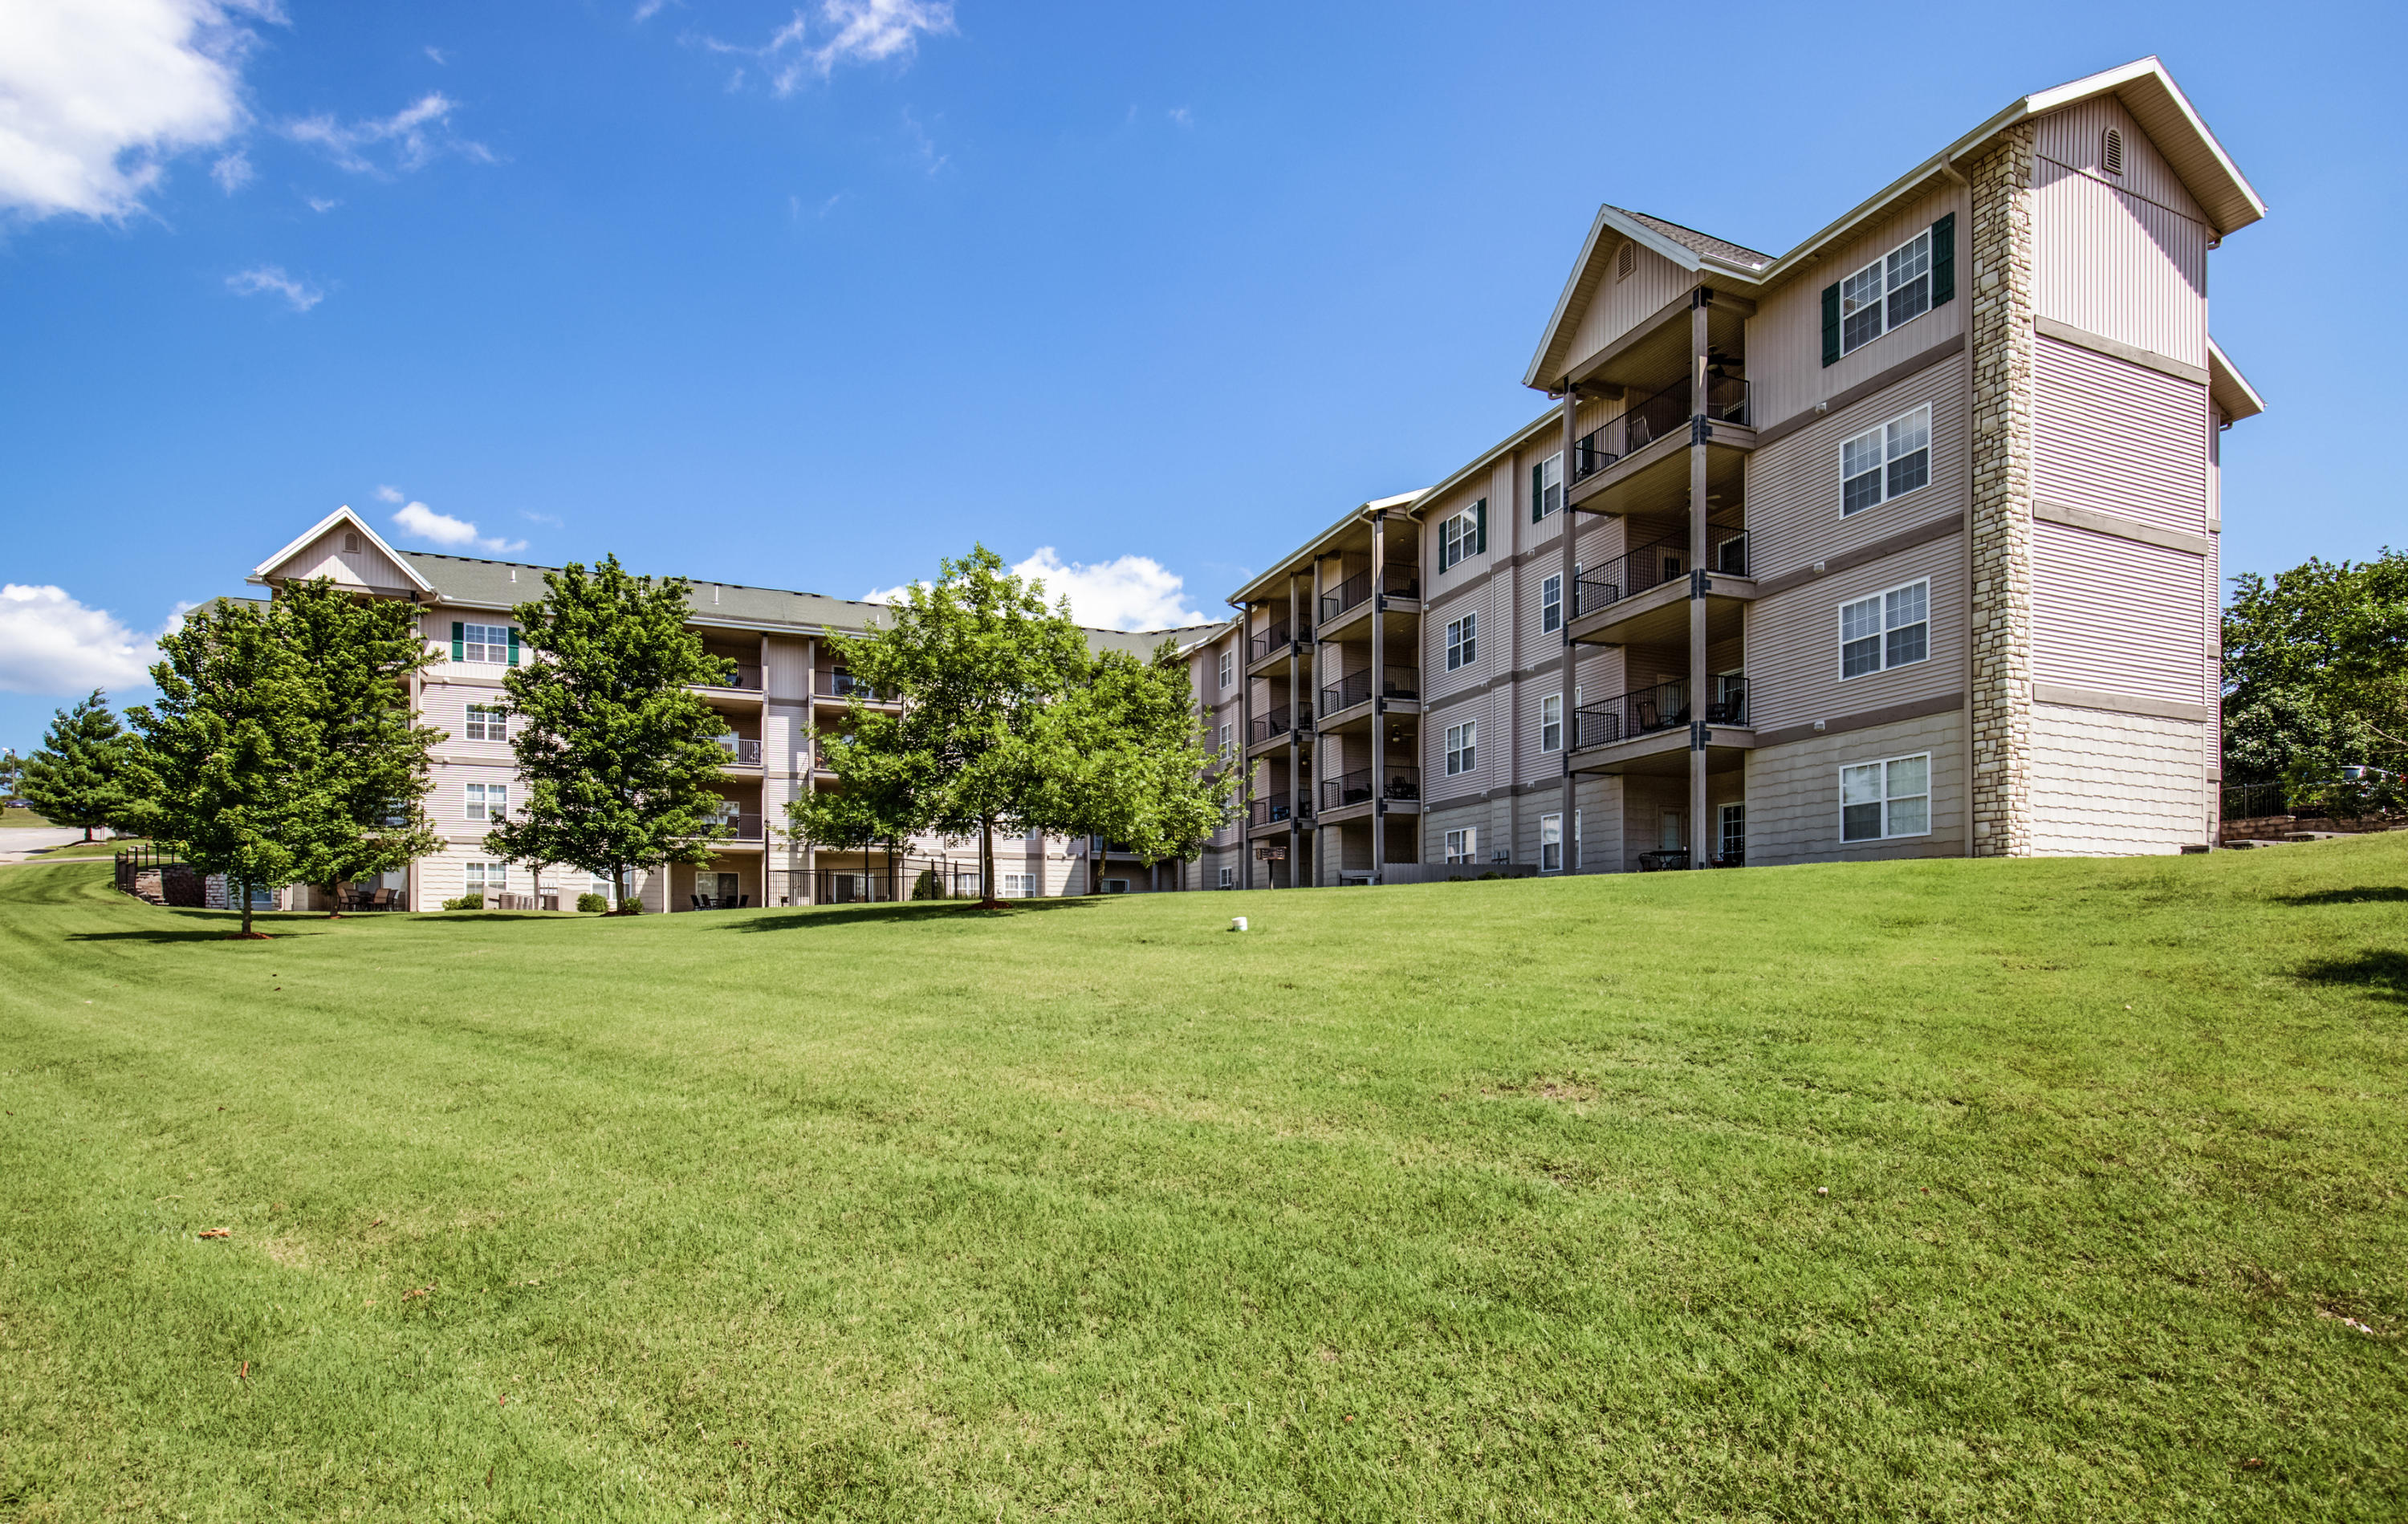 330 South Wildwood Drive #4-5 Branson, MO 65616